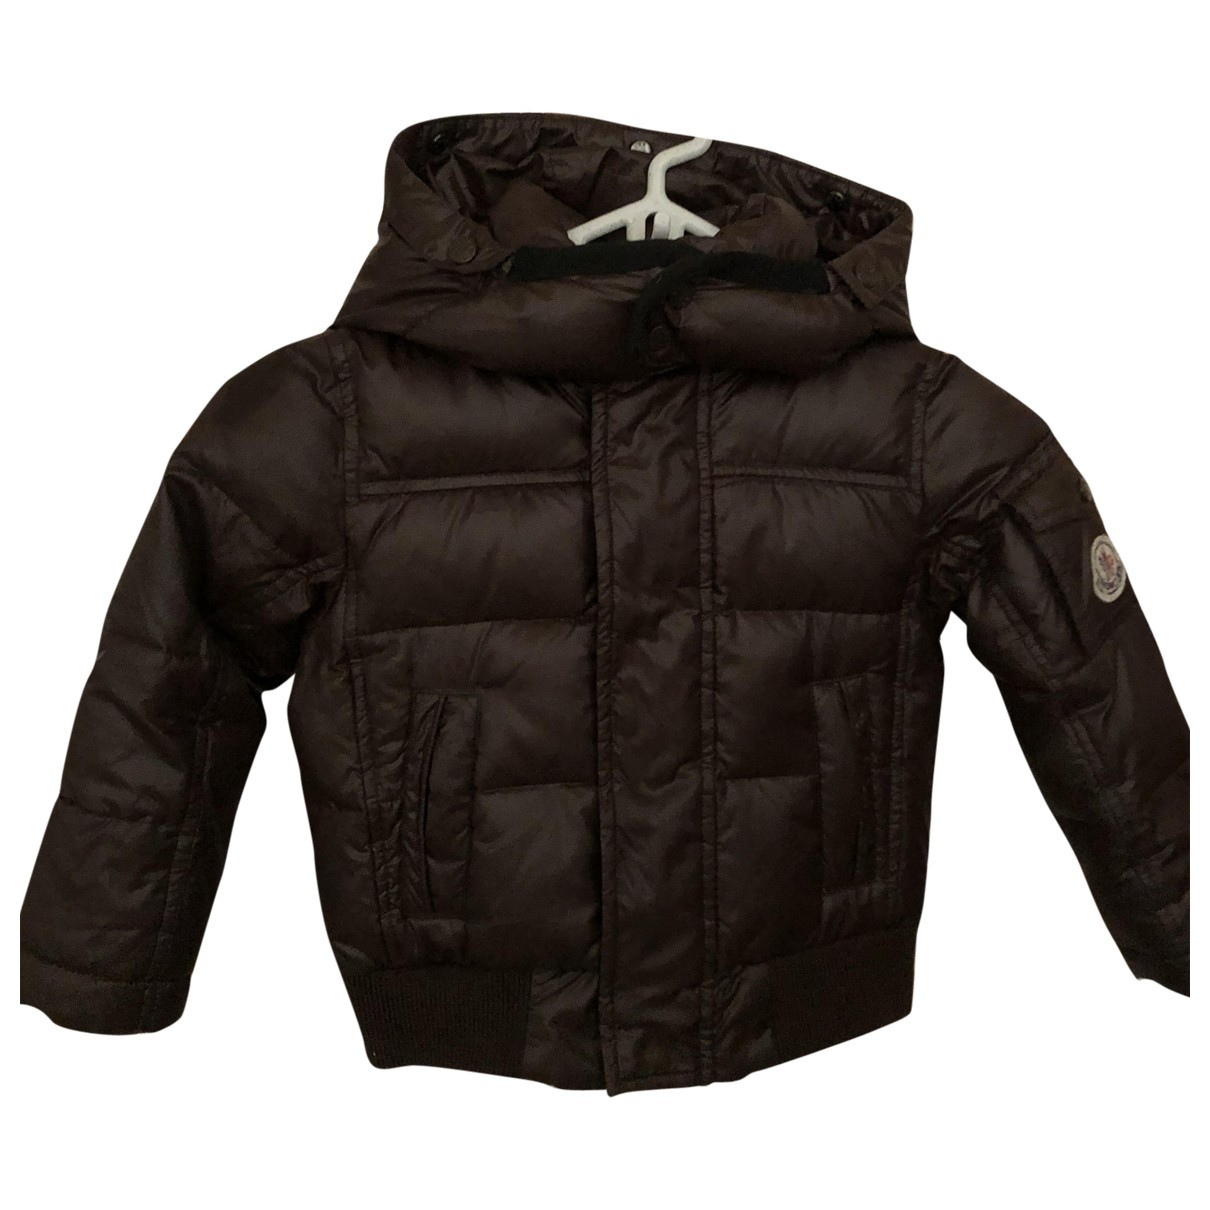 Moncler \N Brown jacket & coat for Kids 2 years - up to 86cm FR